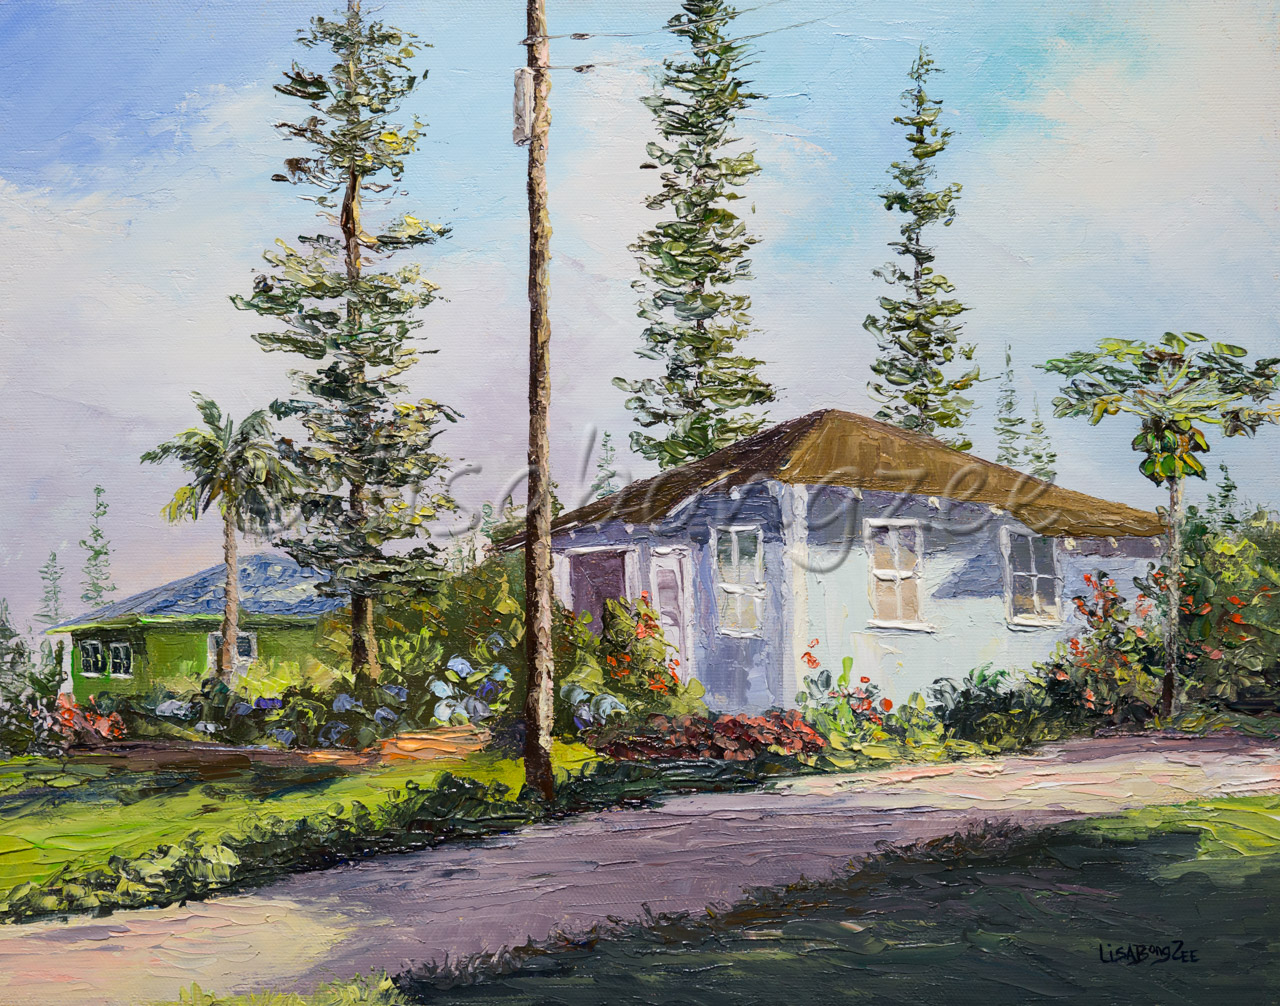 original oil painting of a lavender colored house and a pathway surrounded by grass, trees and other plants